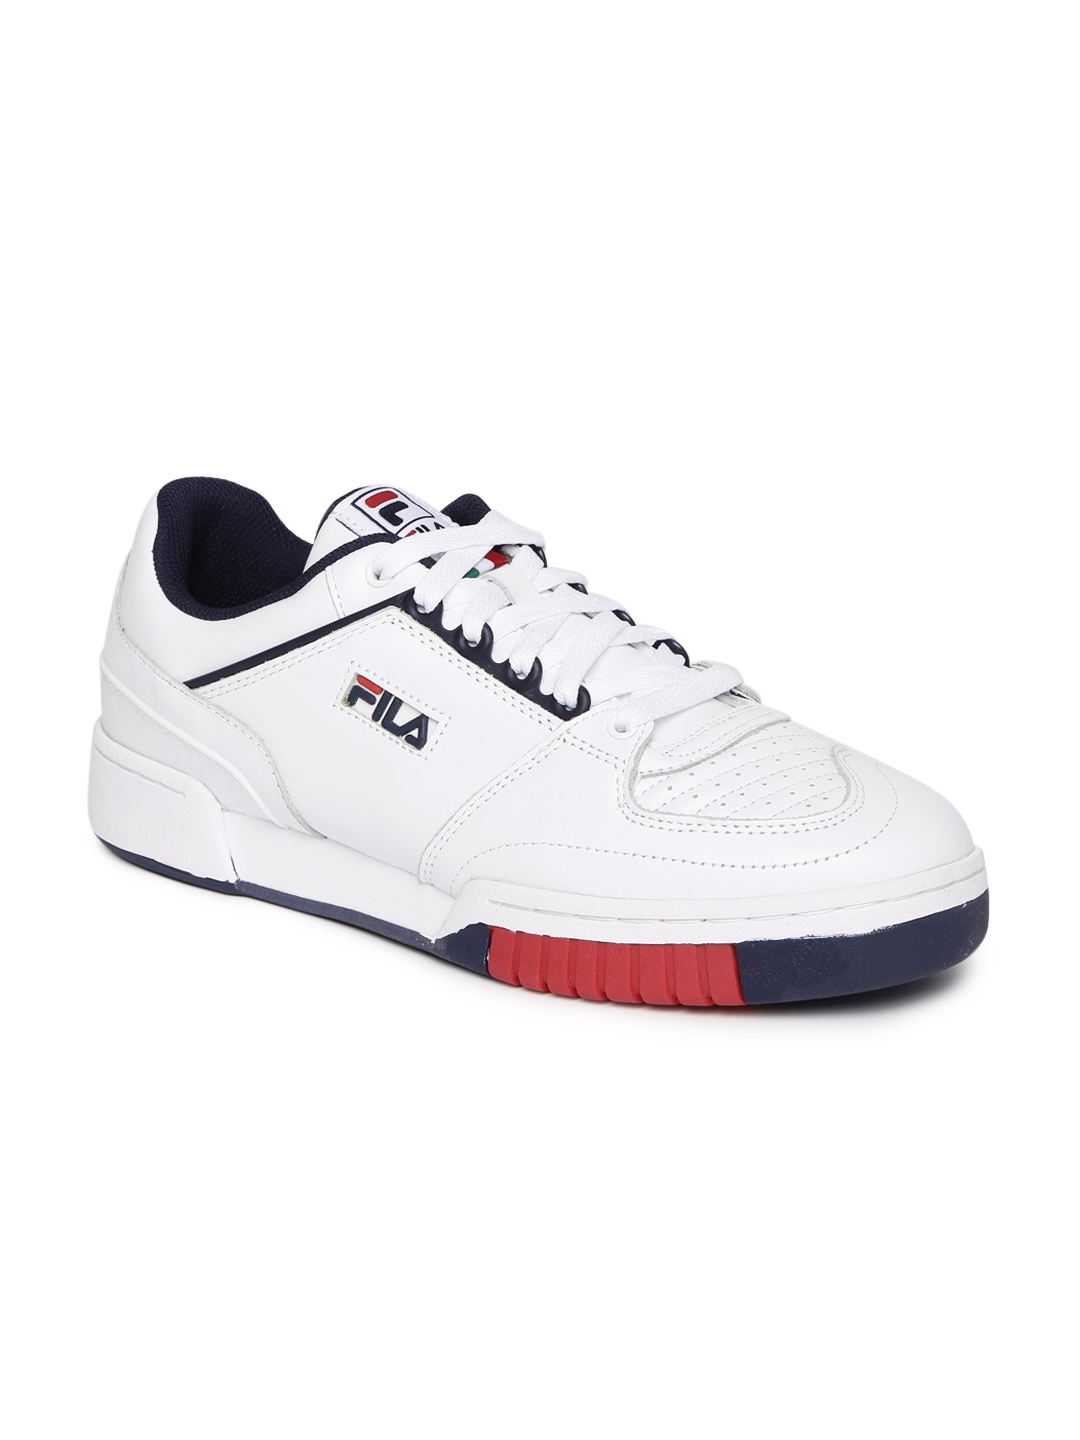 c50b7f97ee7 11523450751683-FILA-Men-White-Solid-Leather-Mid -Top-Targa-Sneakers-1021523450751526-2.jpg